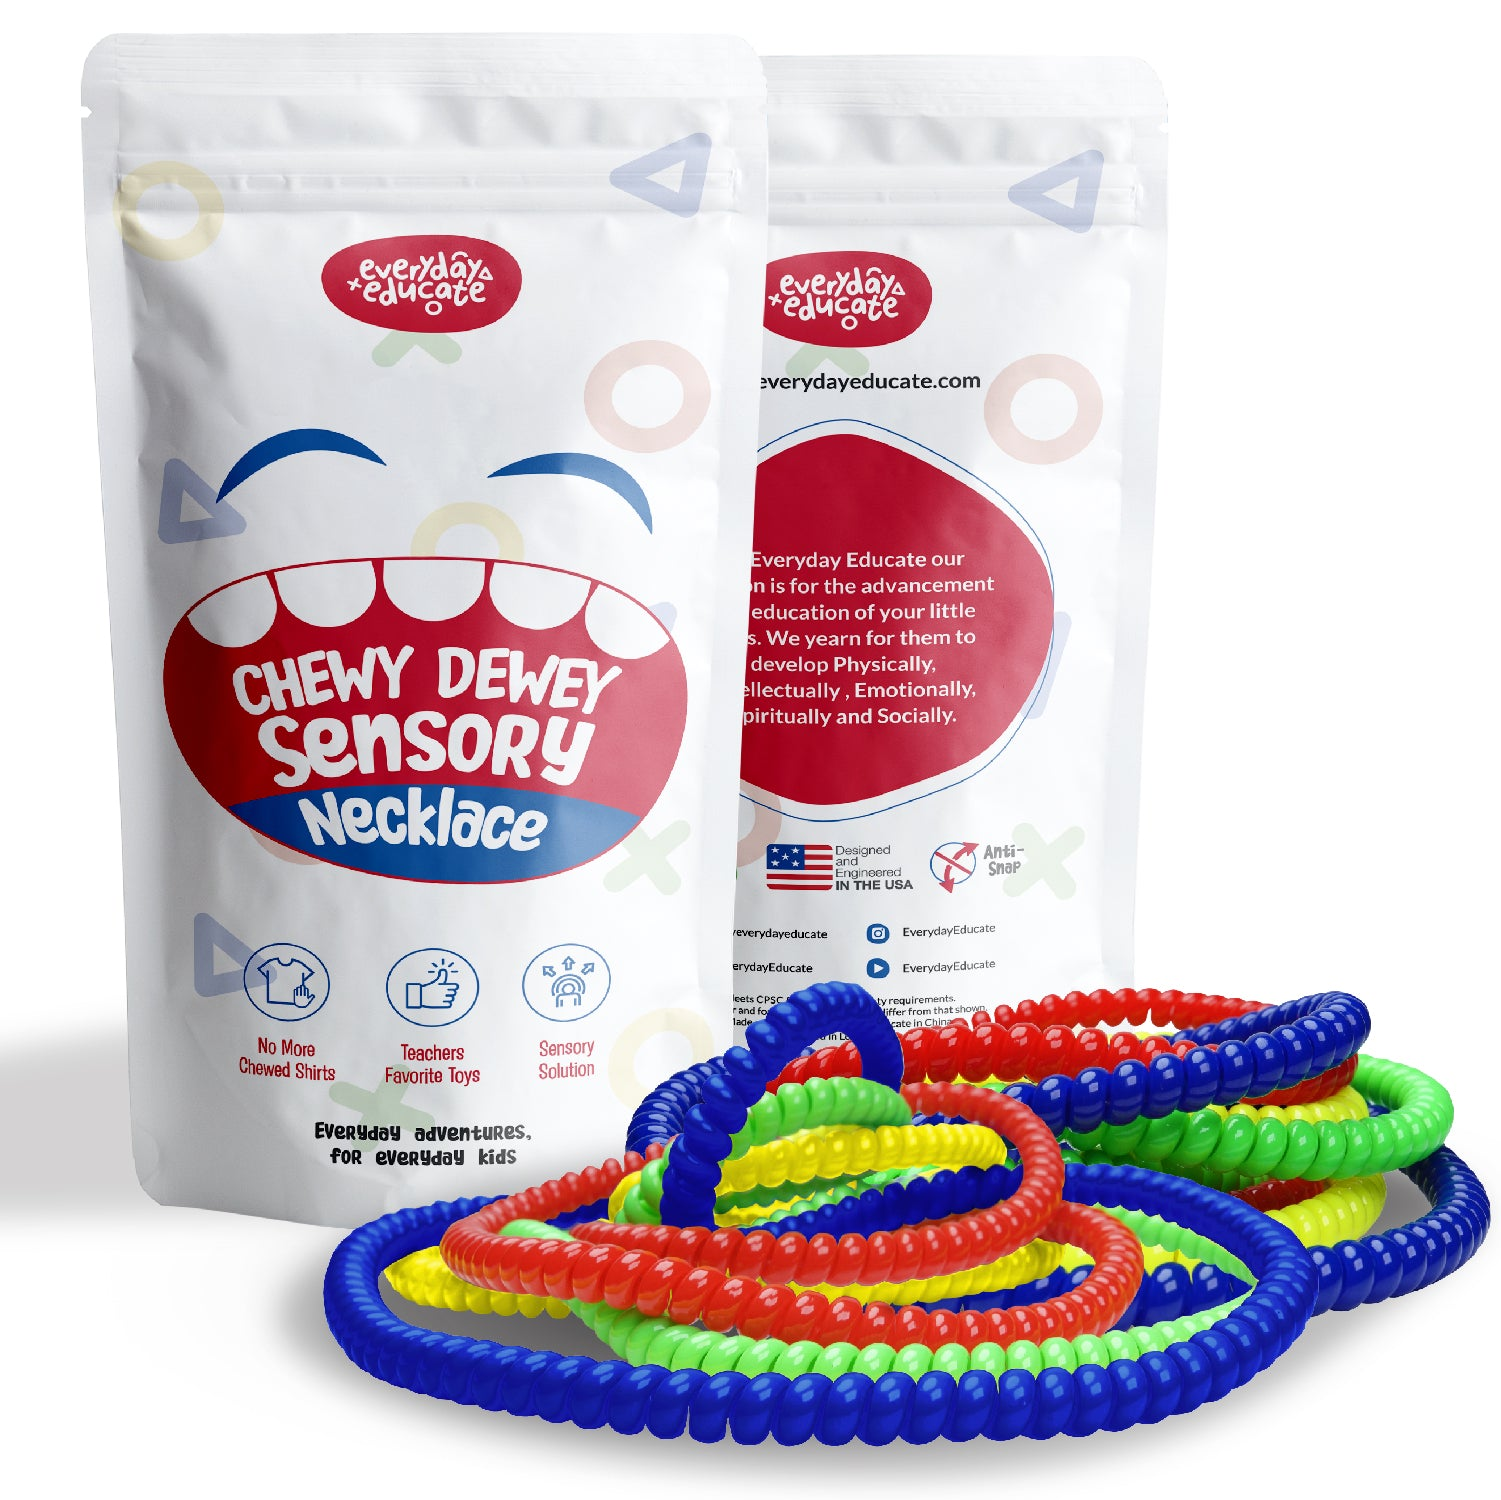 Chewy Dewey™ Sensory Necklace - (8 Pack)